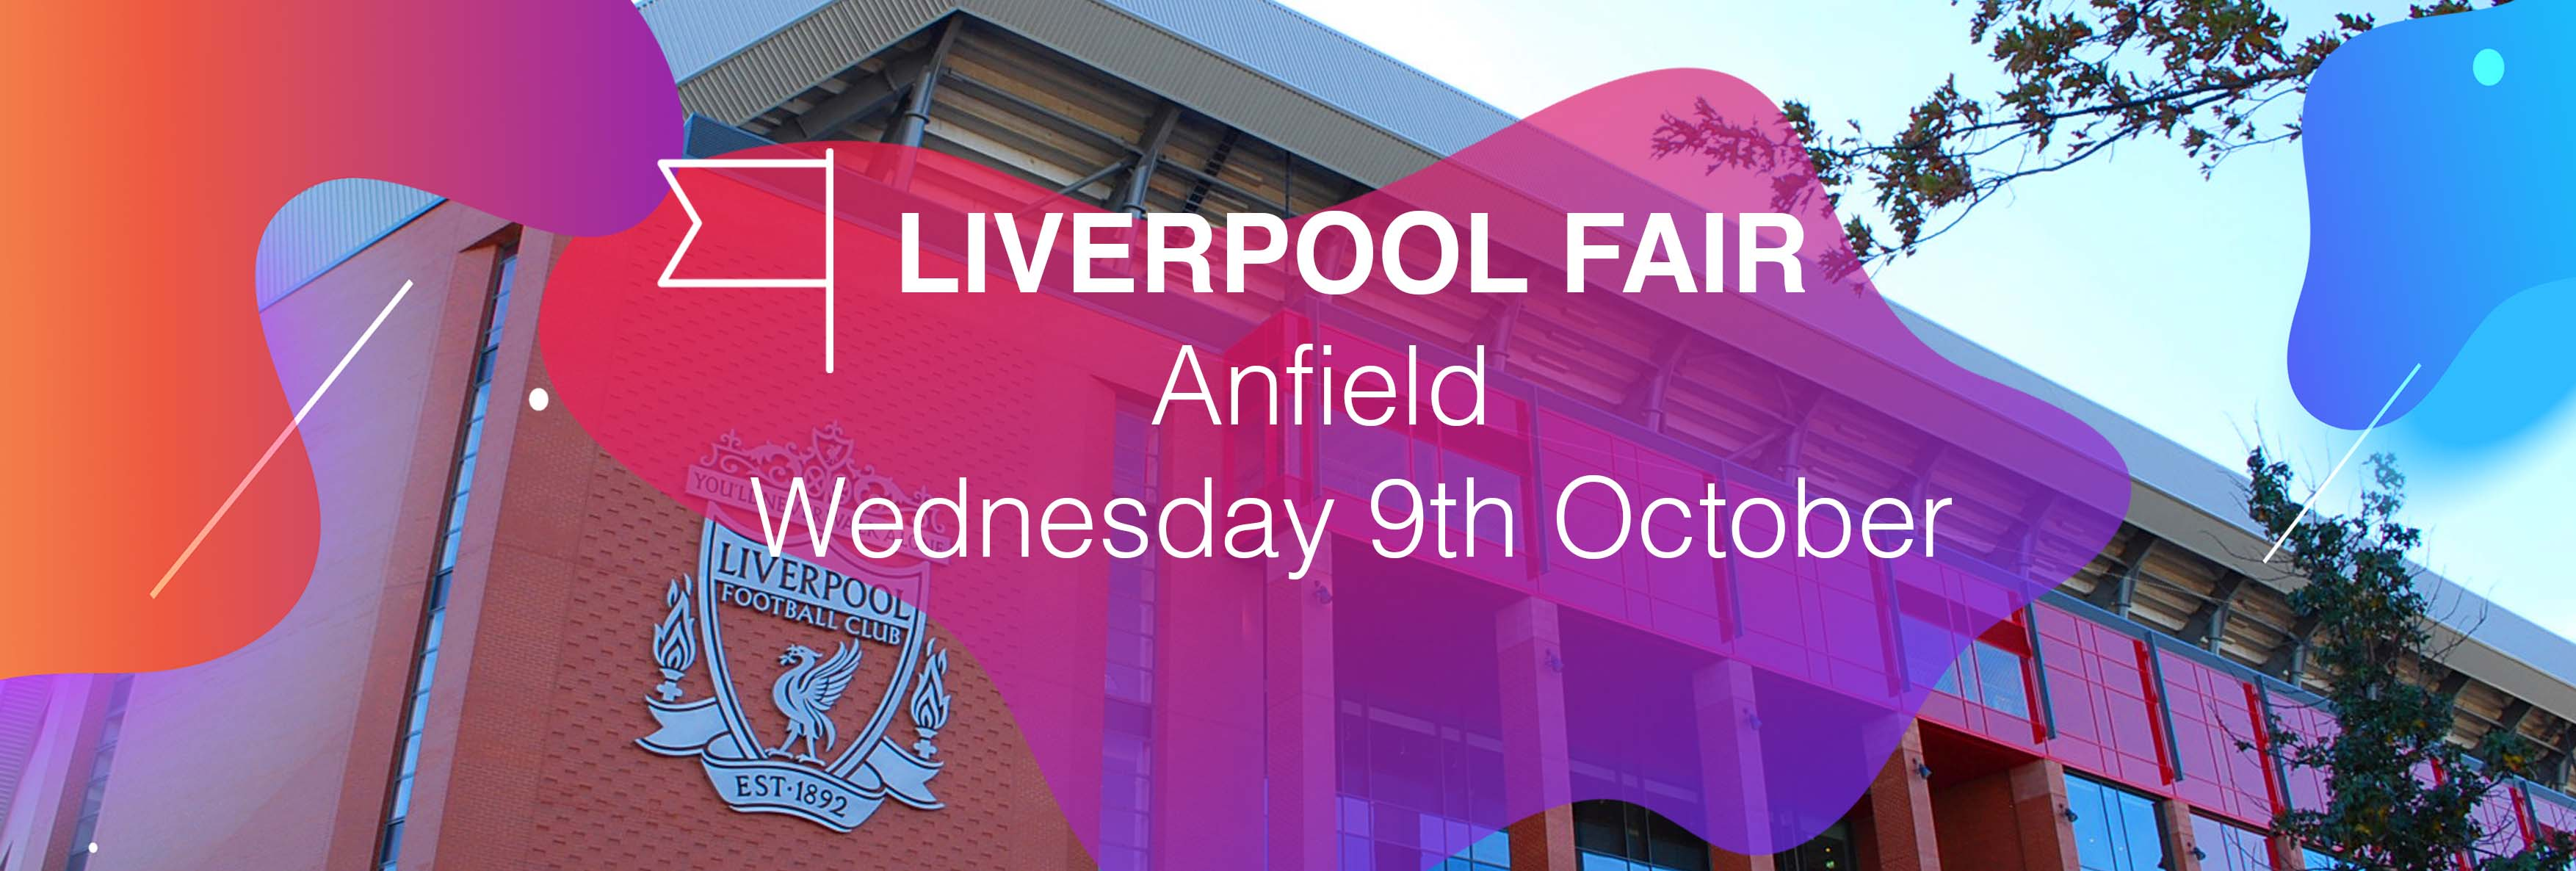 Liverpool Autumn 2019 Fair